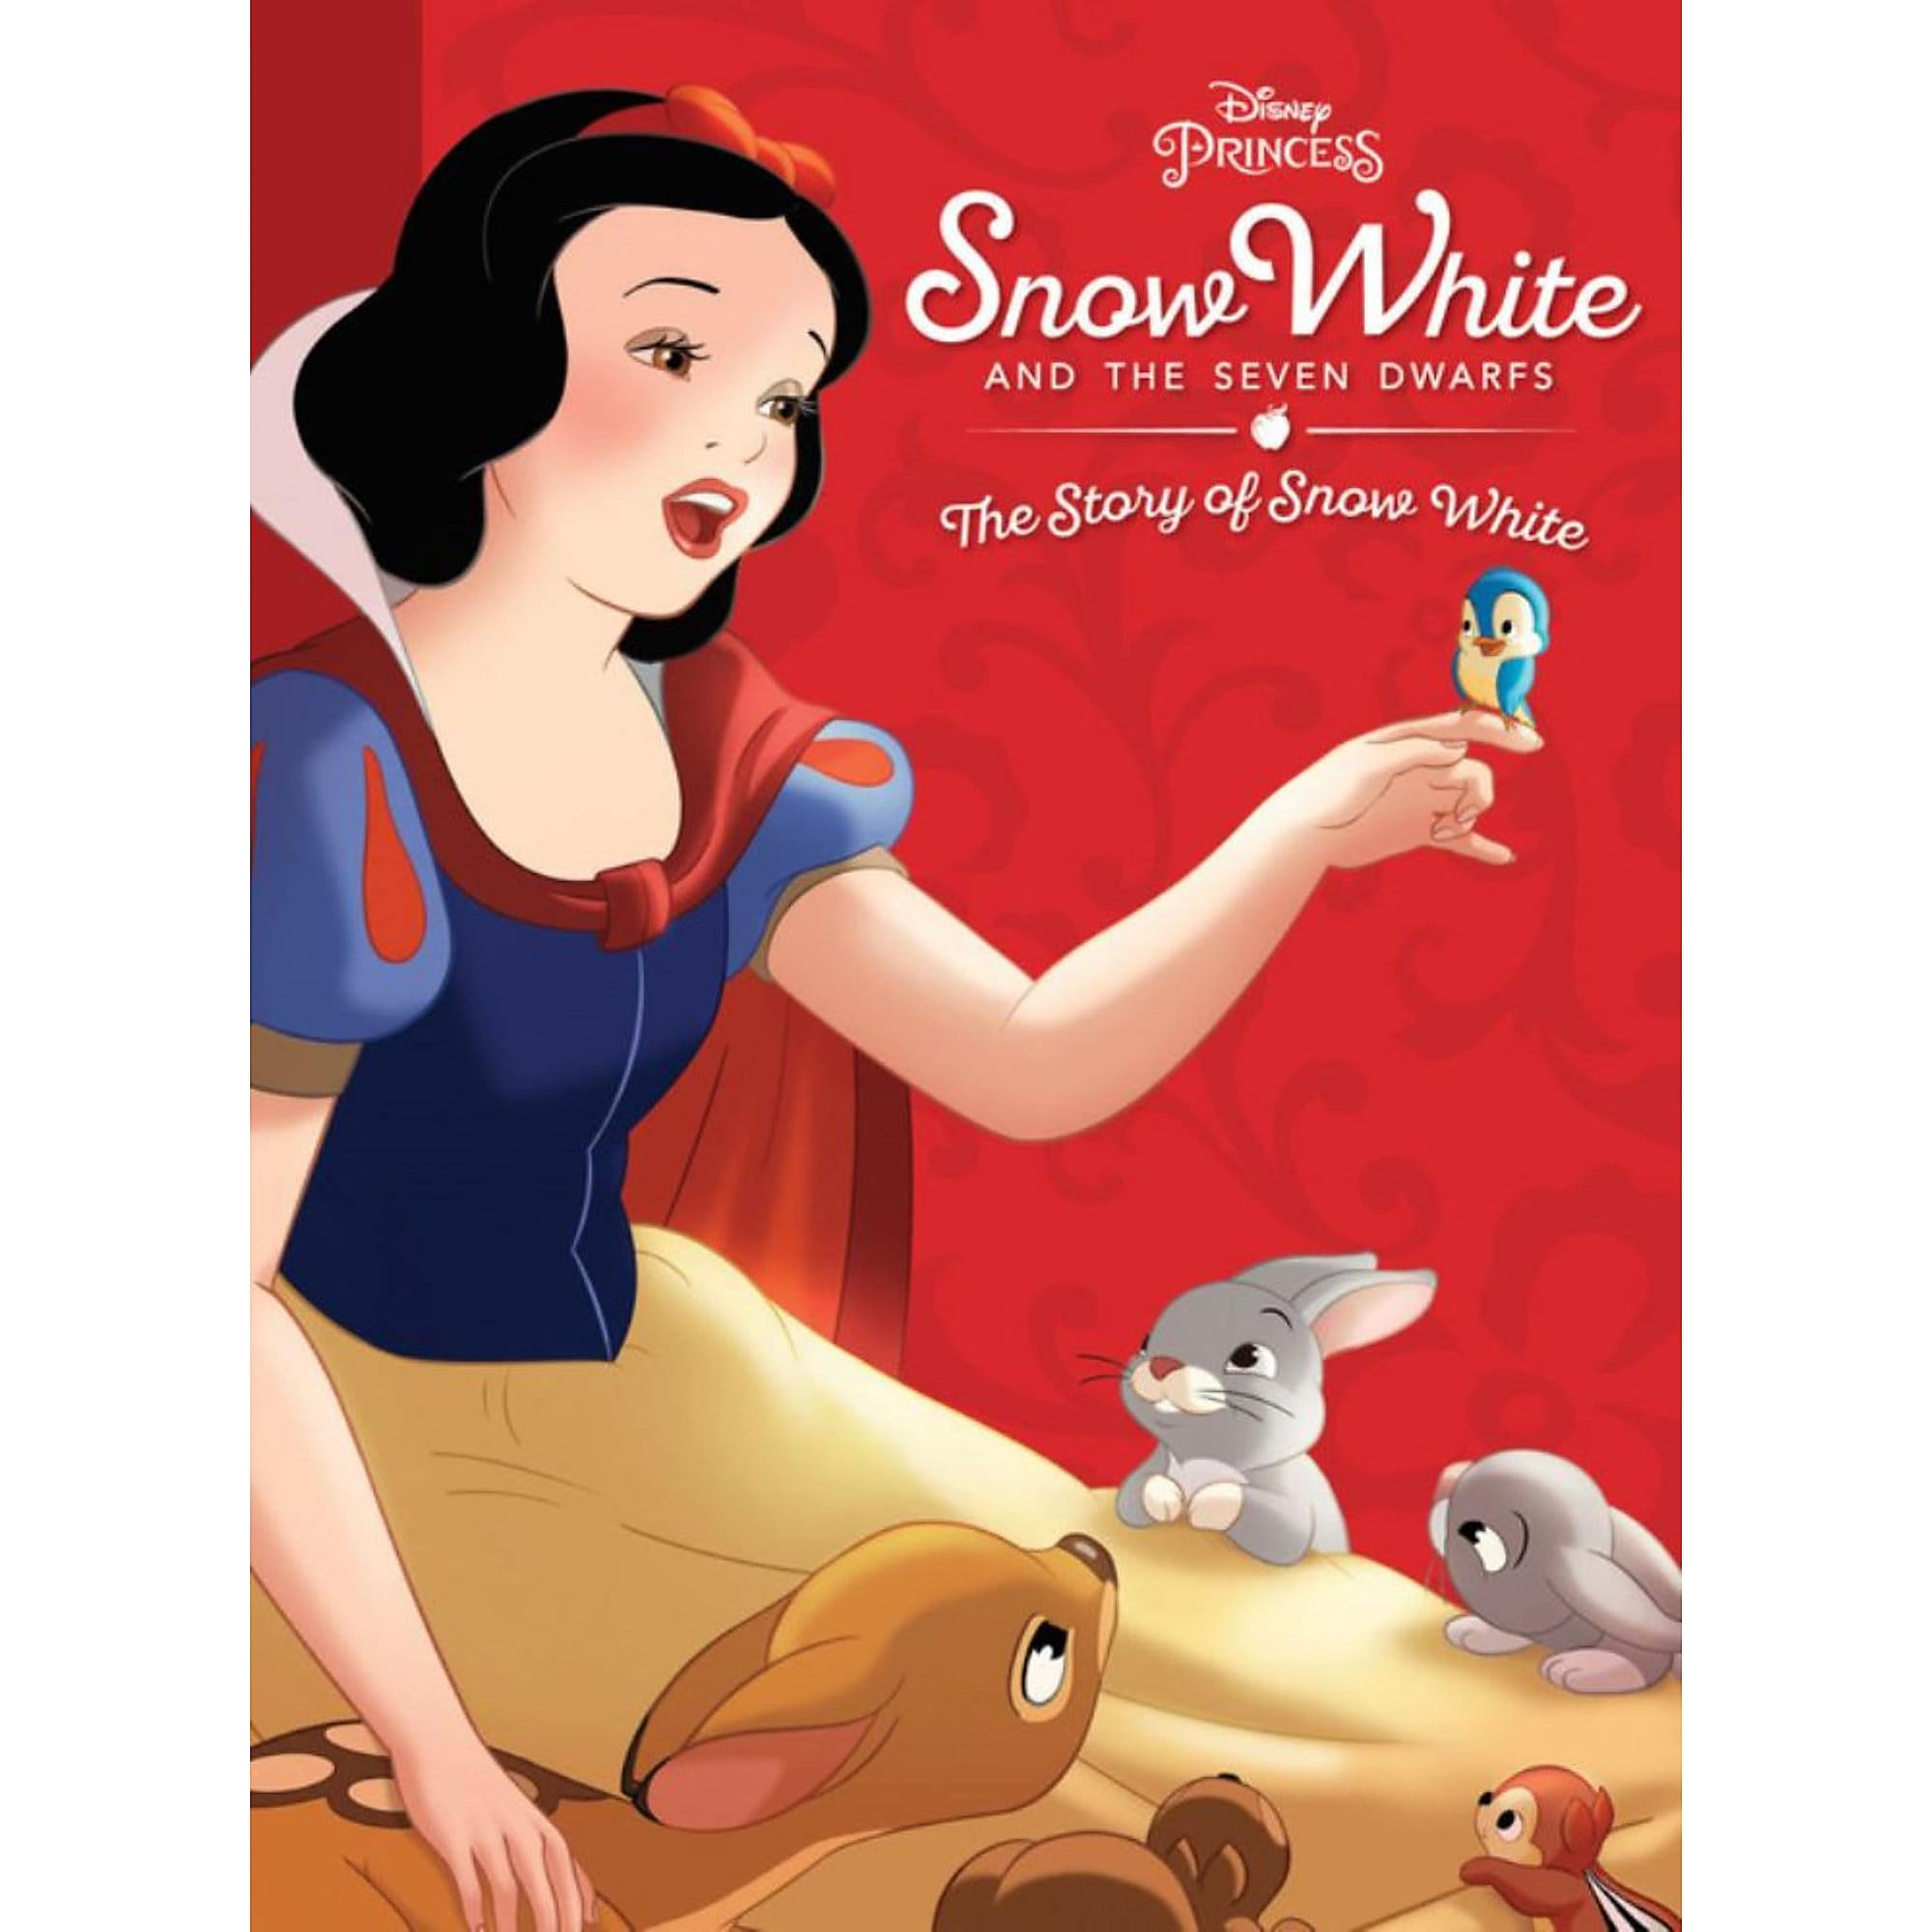 Snow White and the Seven Dwarfs: The Story of Snow White Book